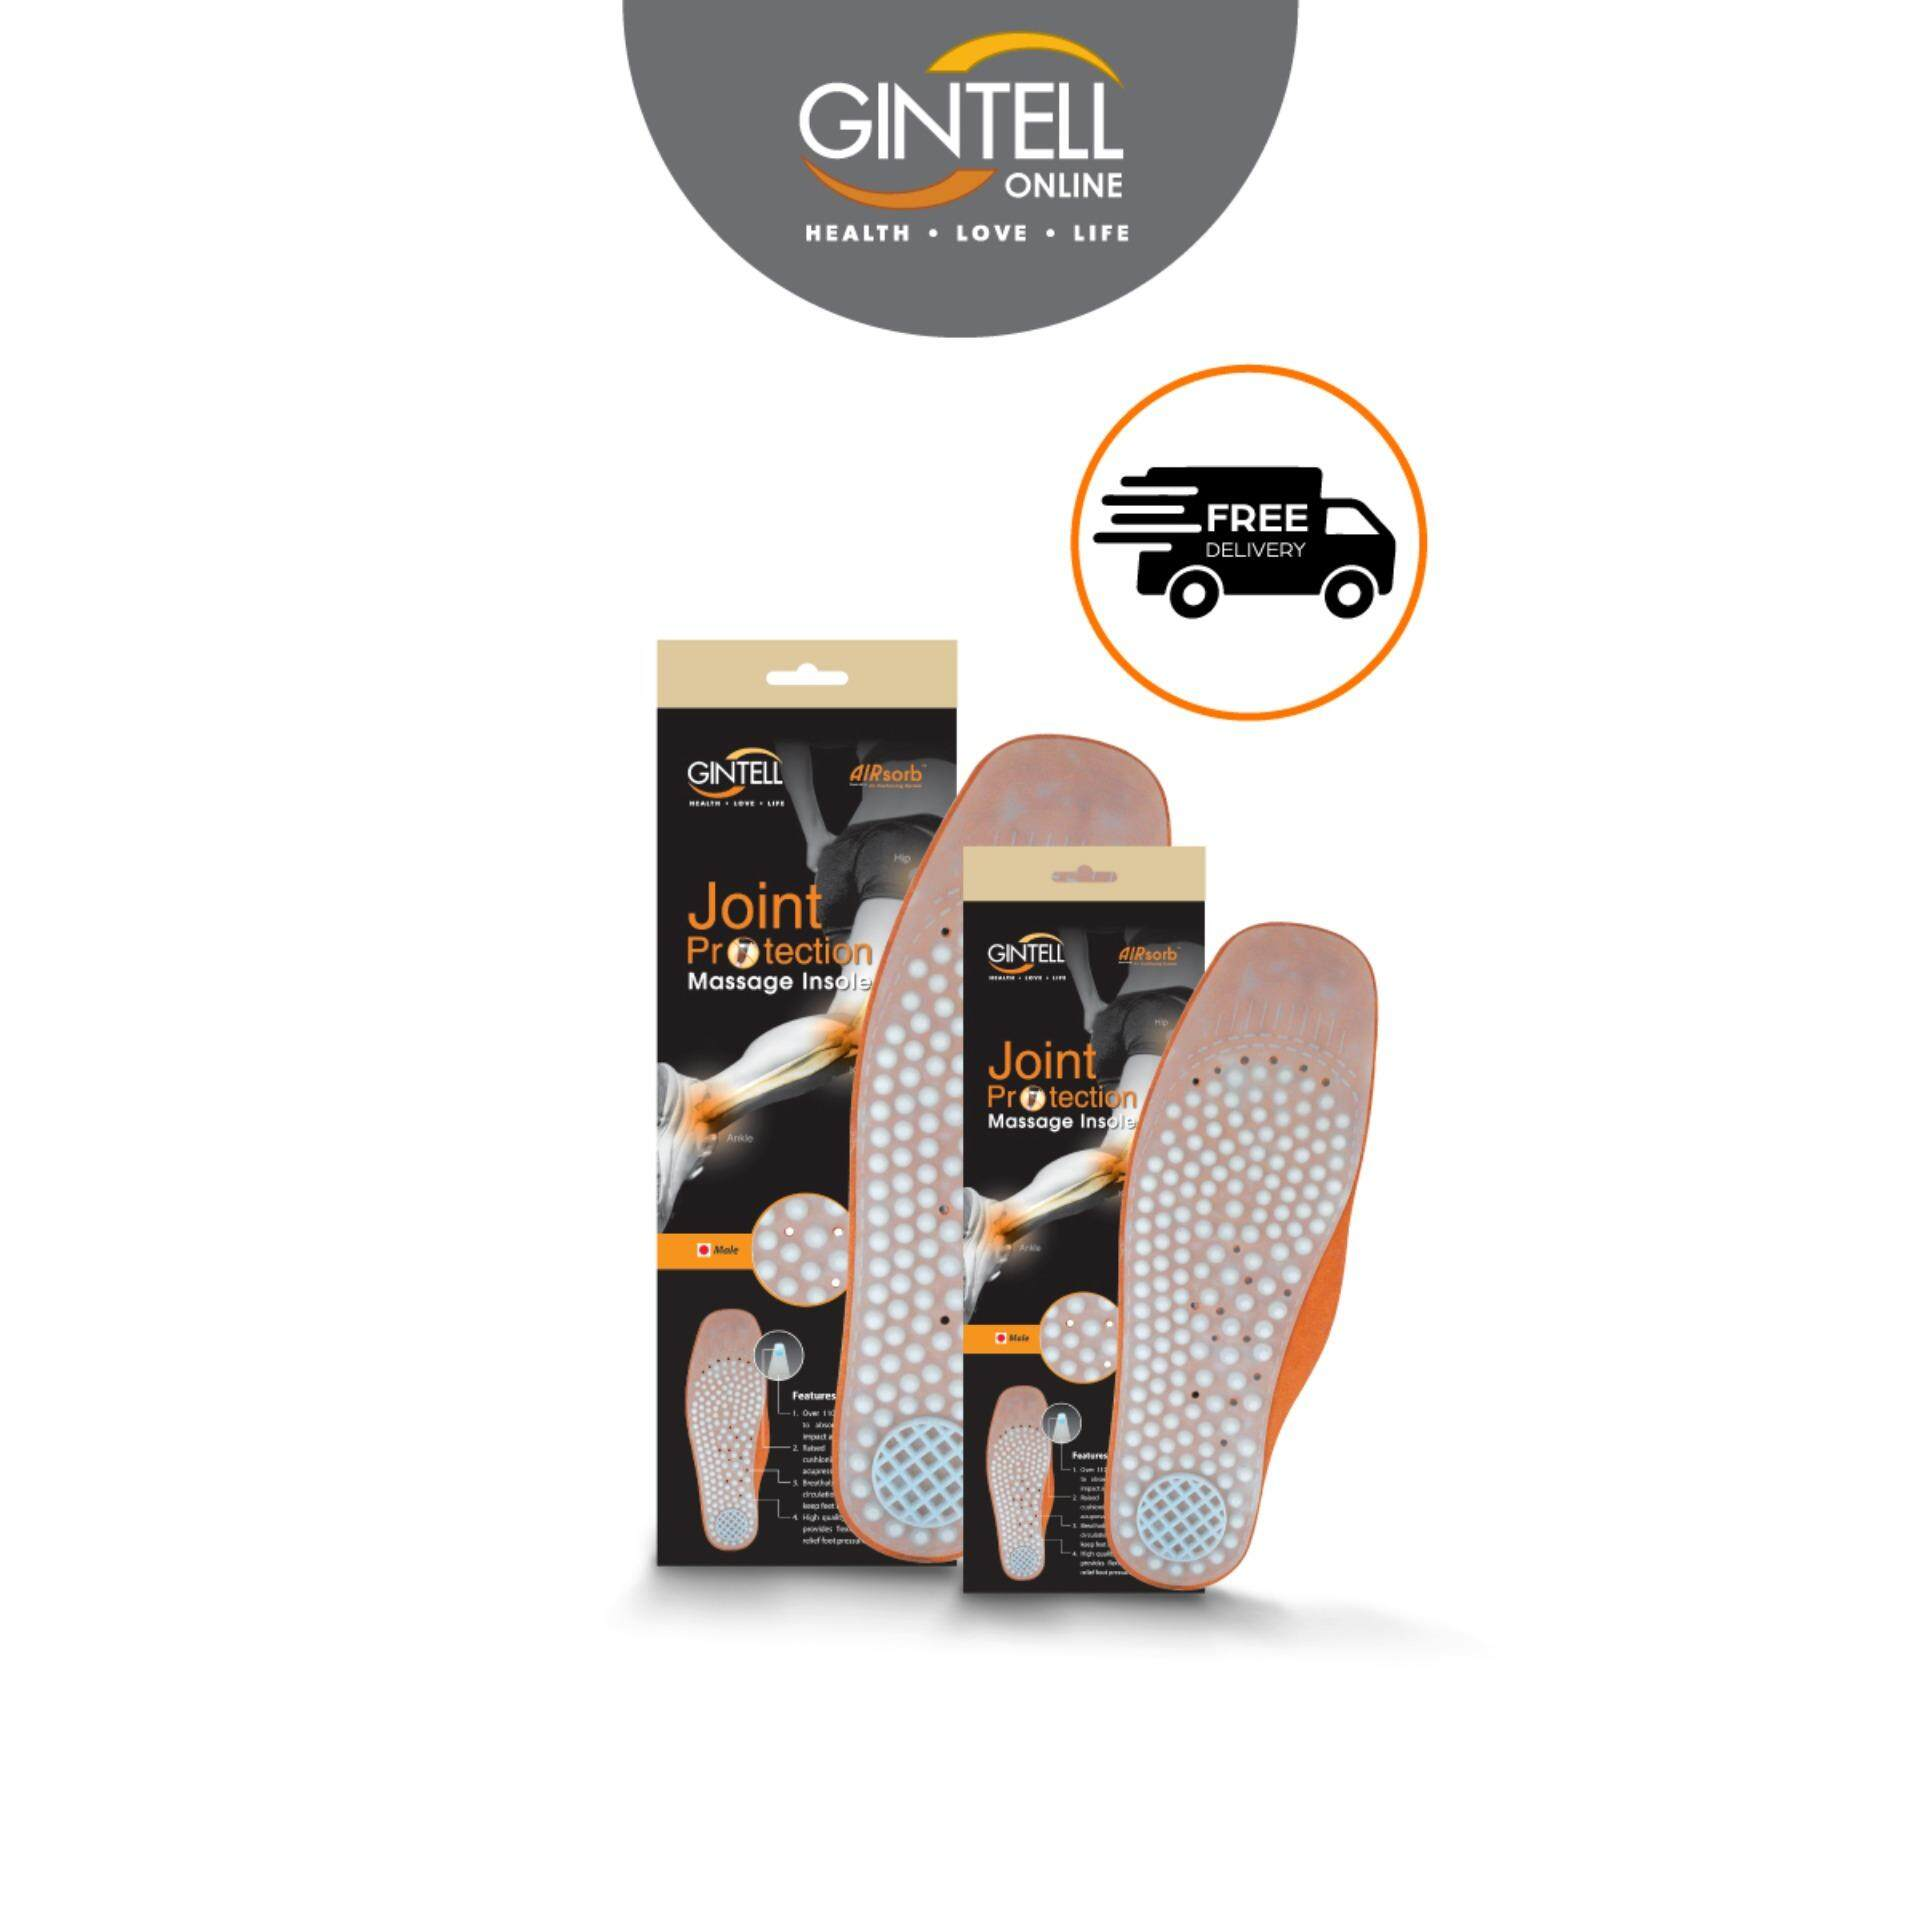 (BUY 1 FREE 1) GINTELL AIRSORB Air Cushioning System (Option: Female)